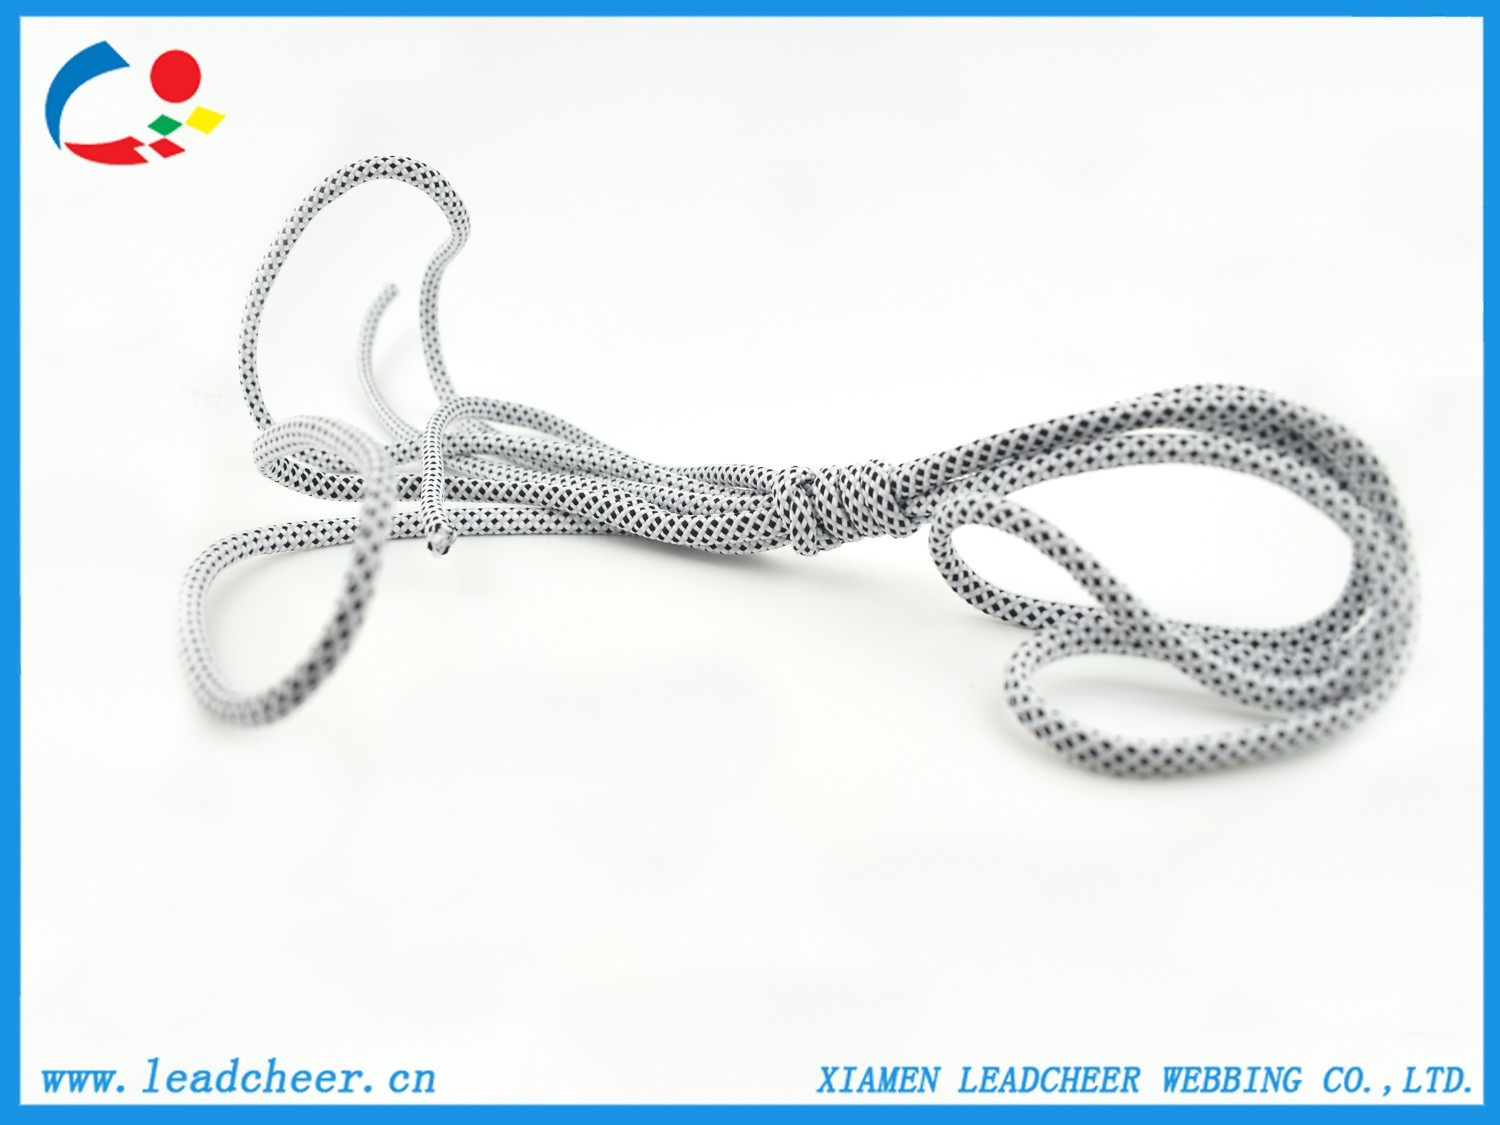 High quality Shoelace Quotes,China Shoelace Factory,Shoelace Purchasing